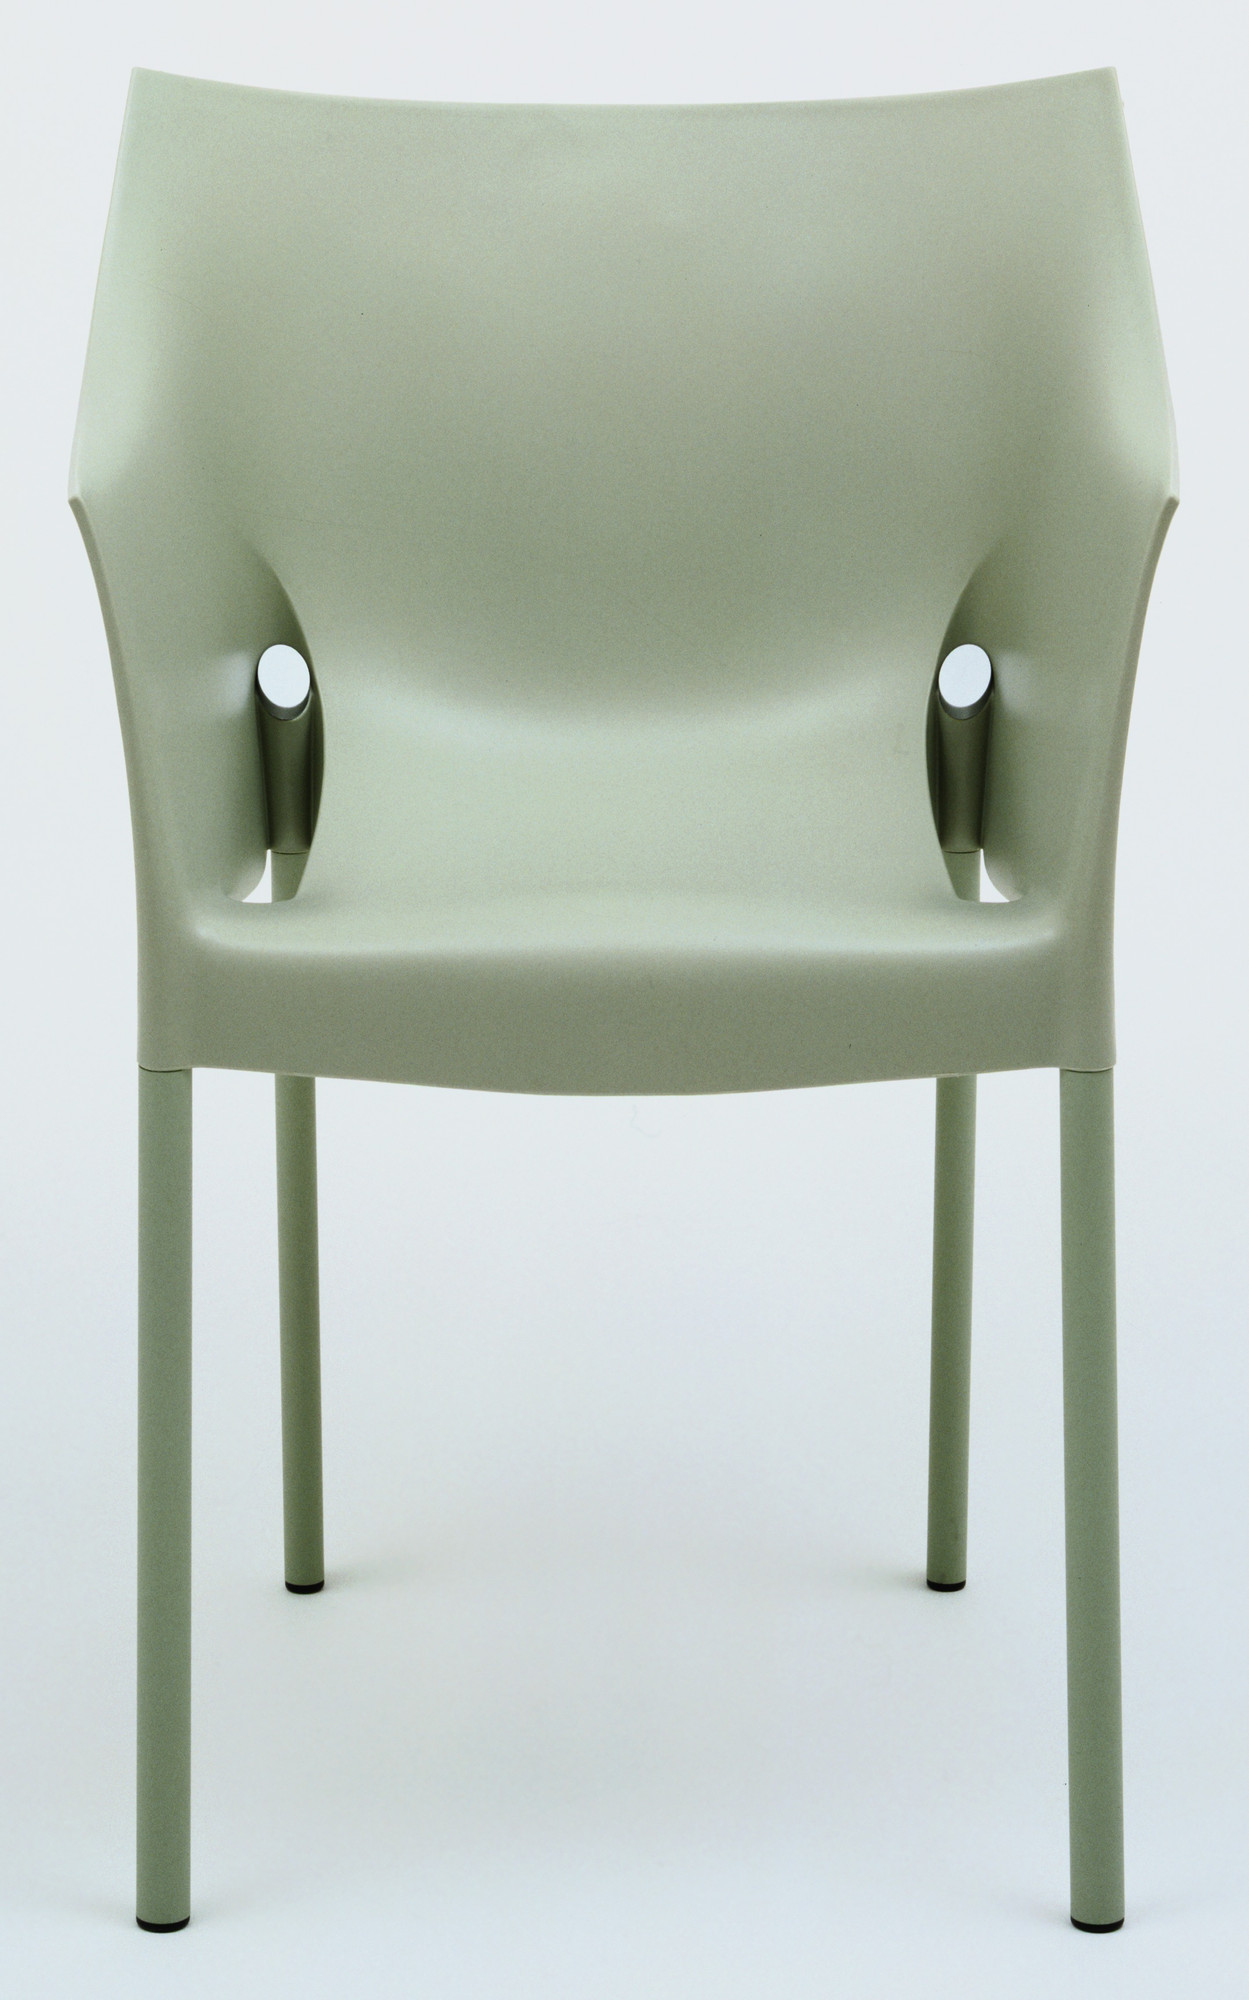 Philippe Starck. Dr. No Chair. 1996